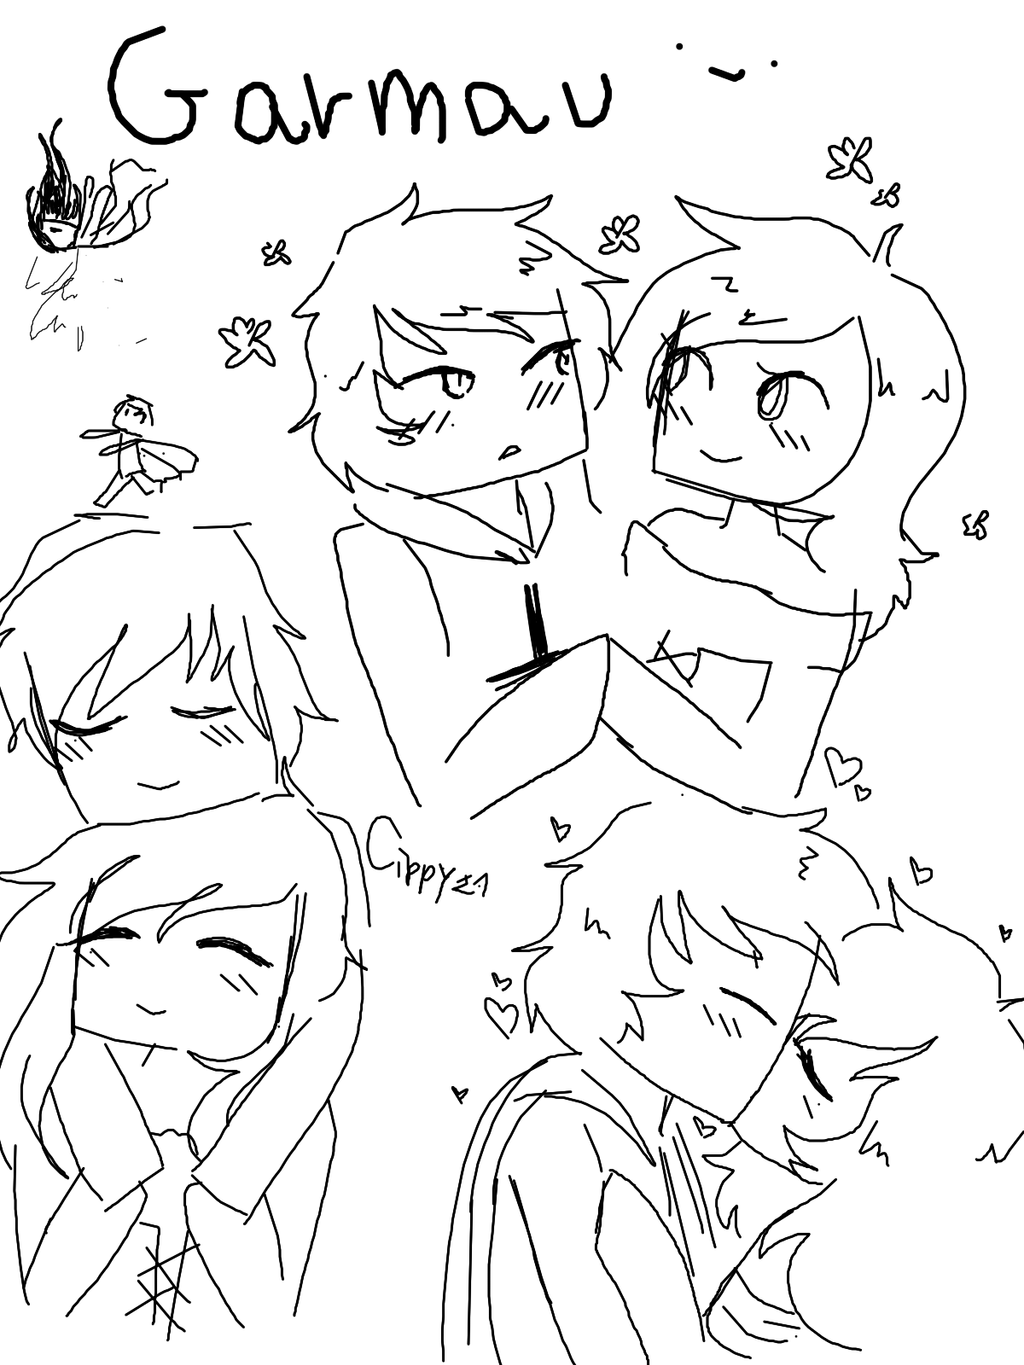 Travis from aphmau coloring pages coloring pages for Aphmau coloring page